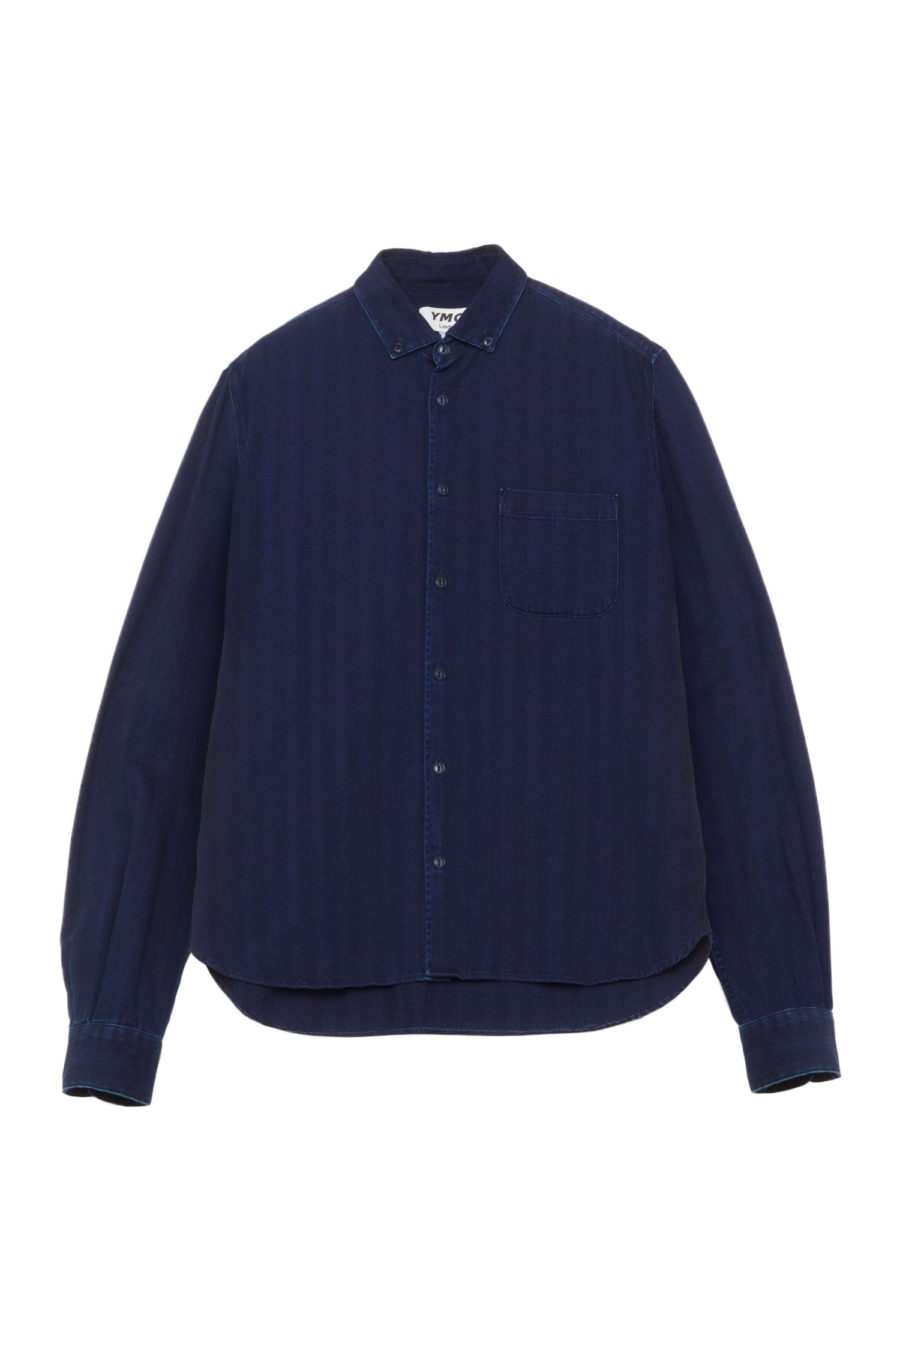 DEAN COTTON HERRINGBONE SHIRT INDIGO